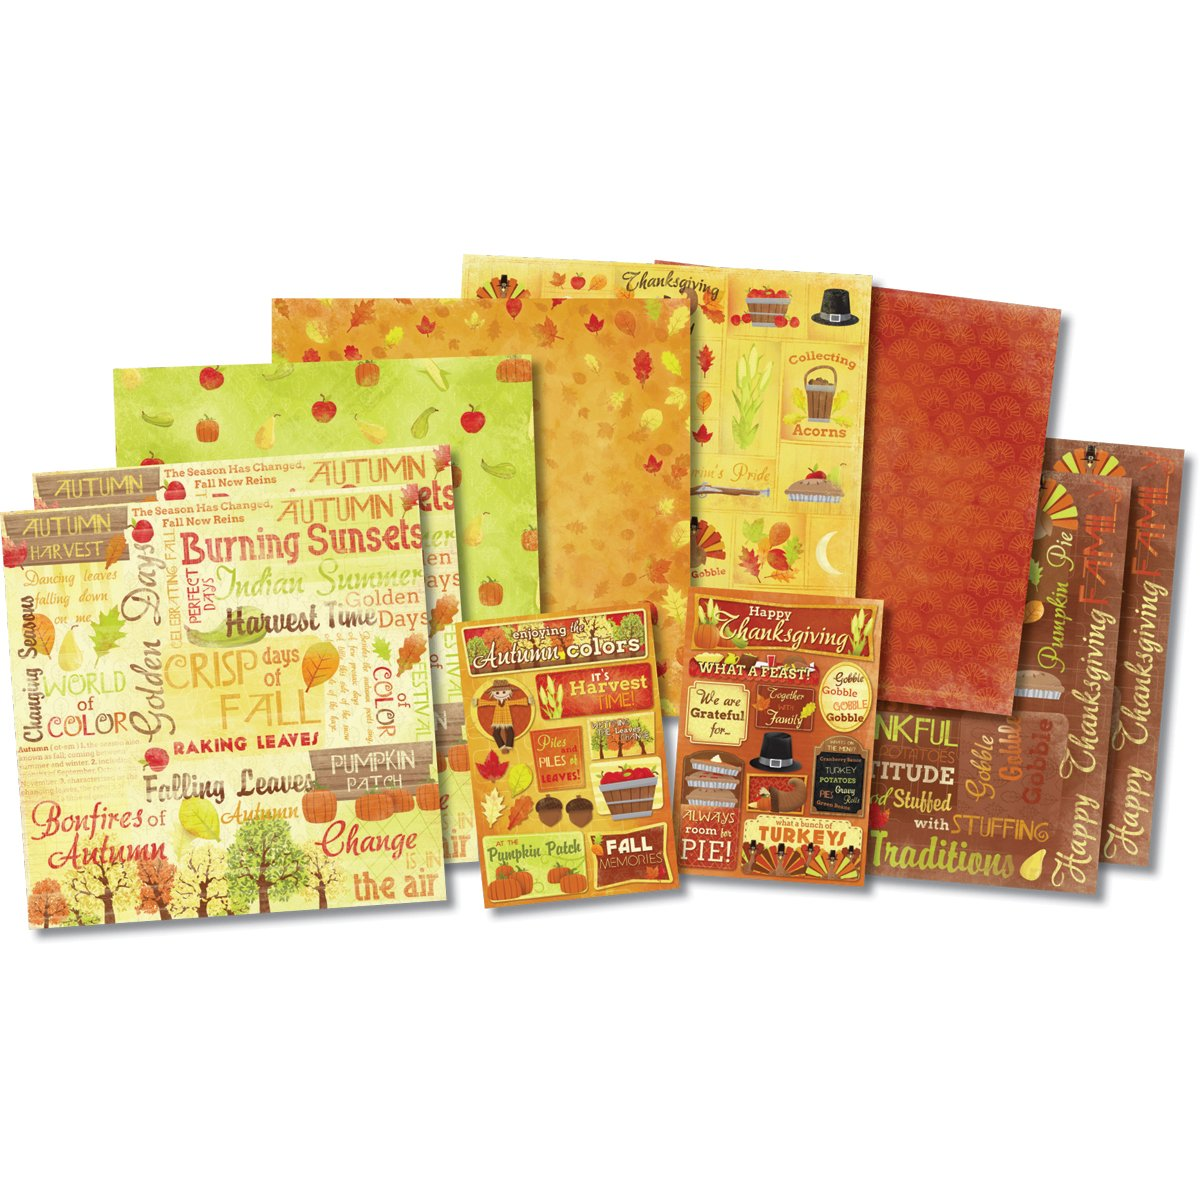 Scrapbook paper examples - Karen Foster Bushel Of Blessings Scrapbook Kit This Kit Makes It Easy To Create Scrapbook Layouts Cards And Other Craft Projects With Themed Paper And